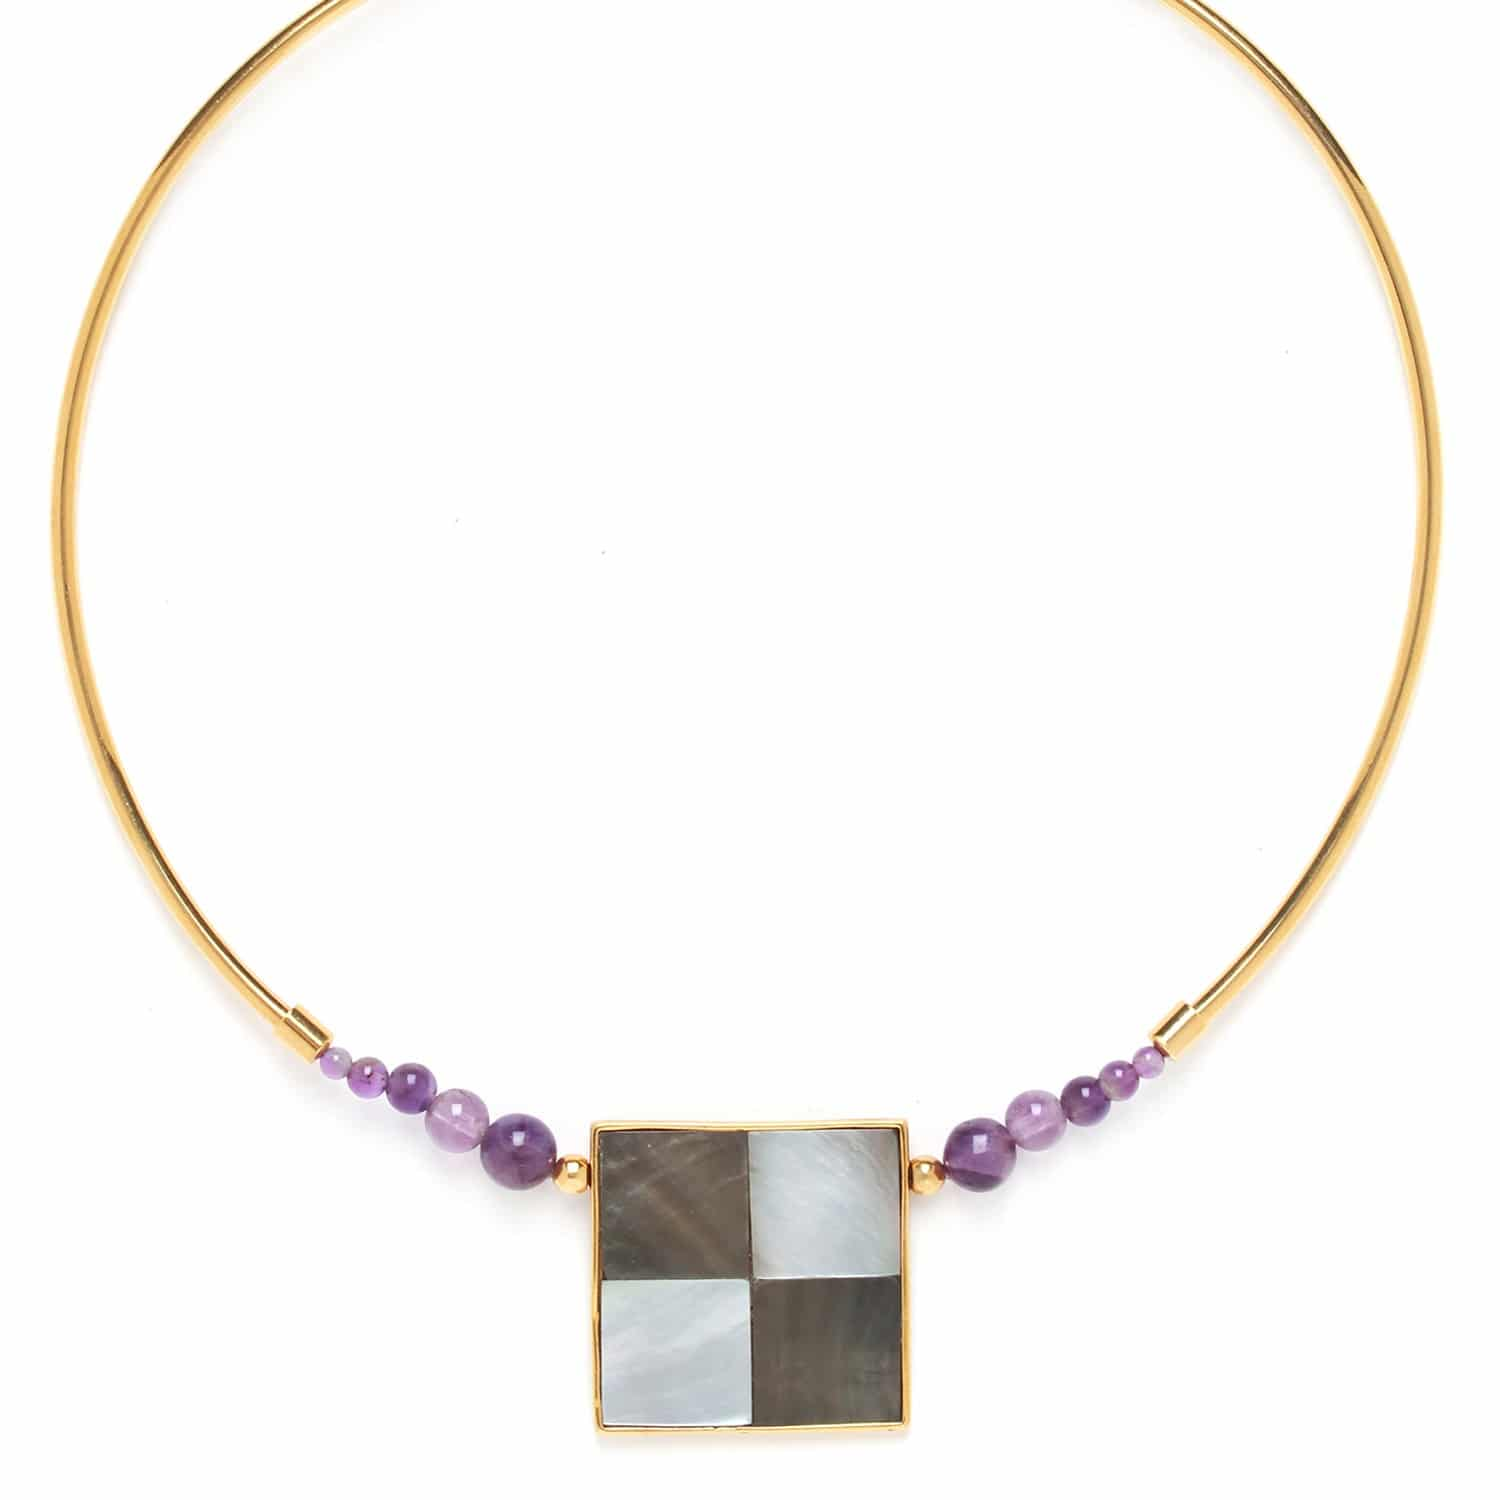 LE SQUARE tork necklace